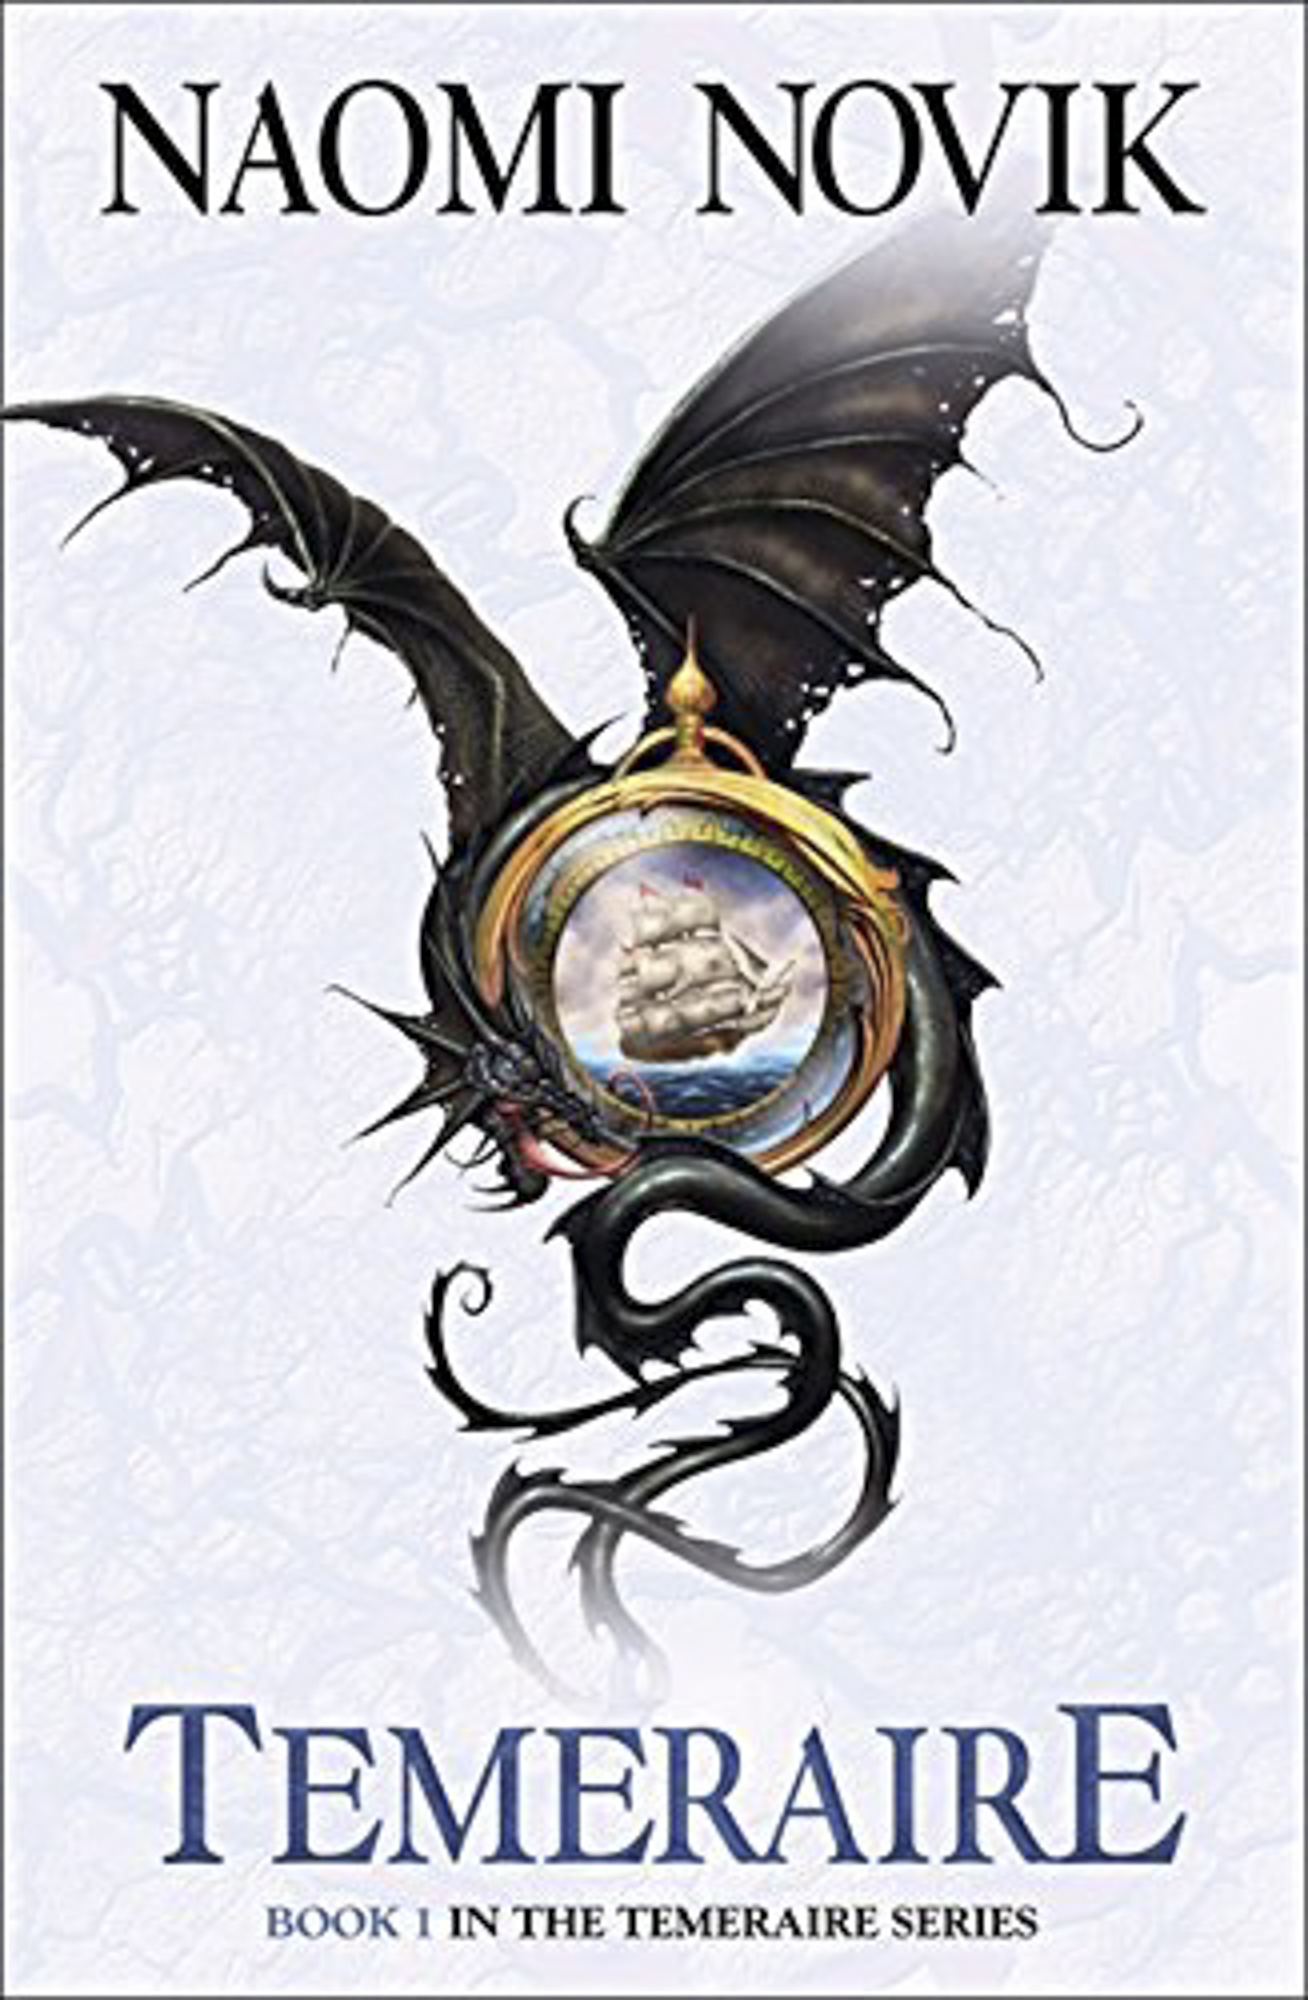 The Temeraire novels by Naomi Novik